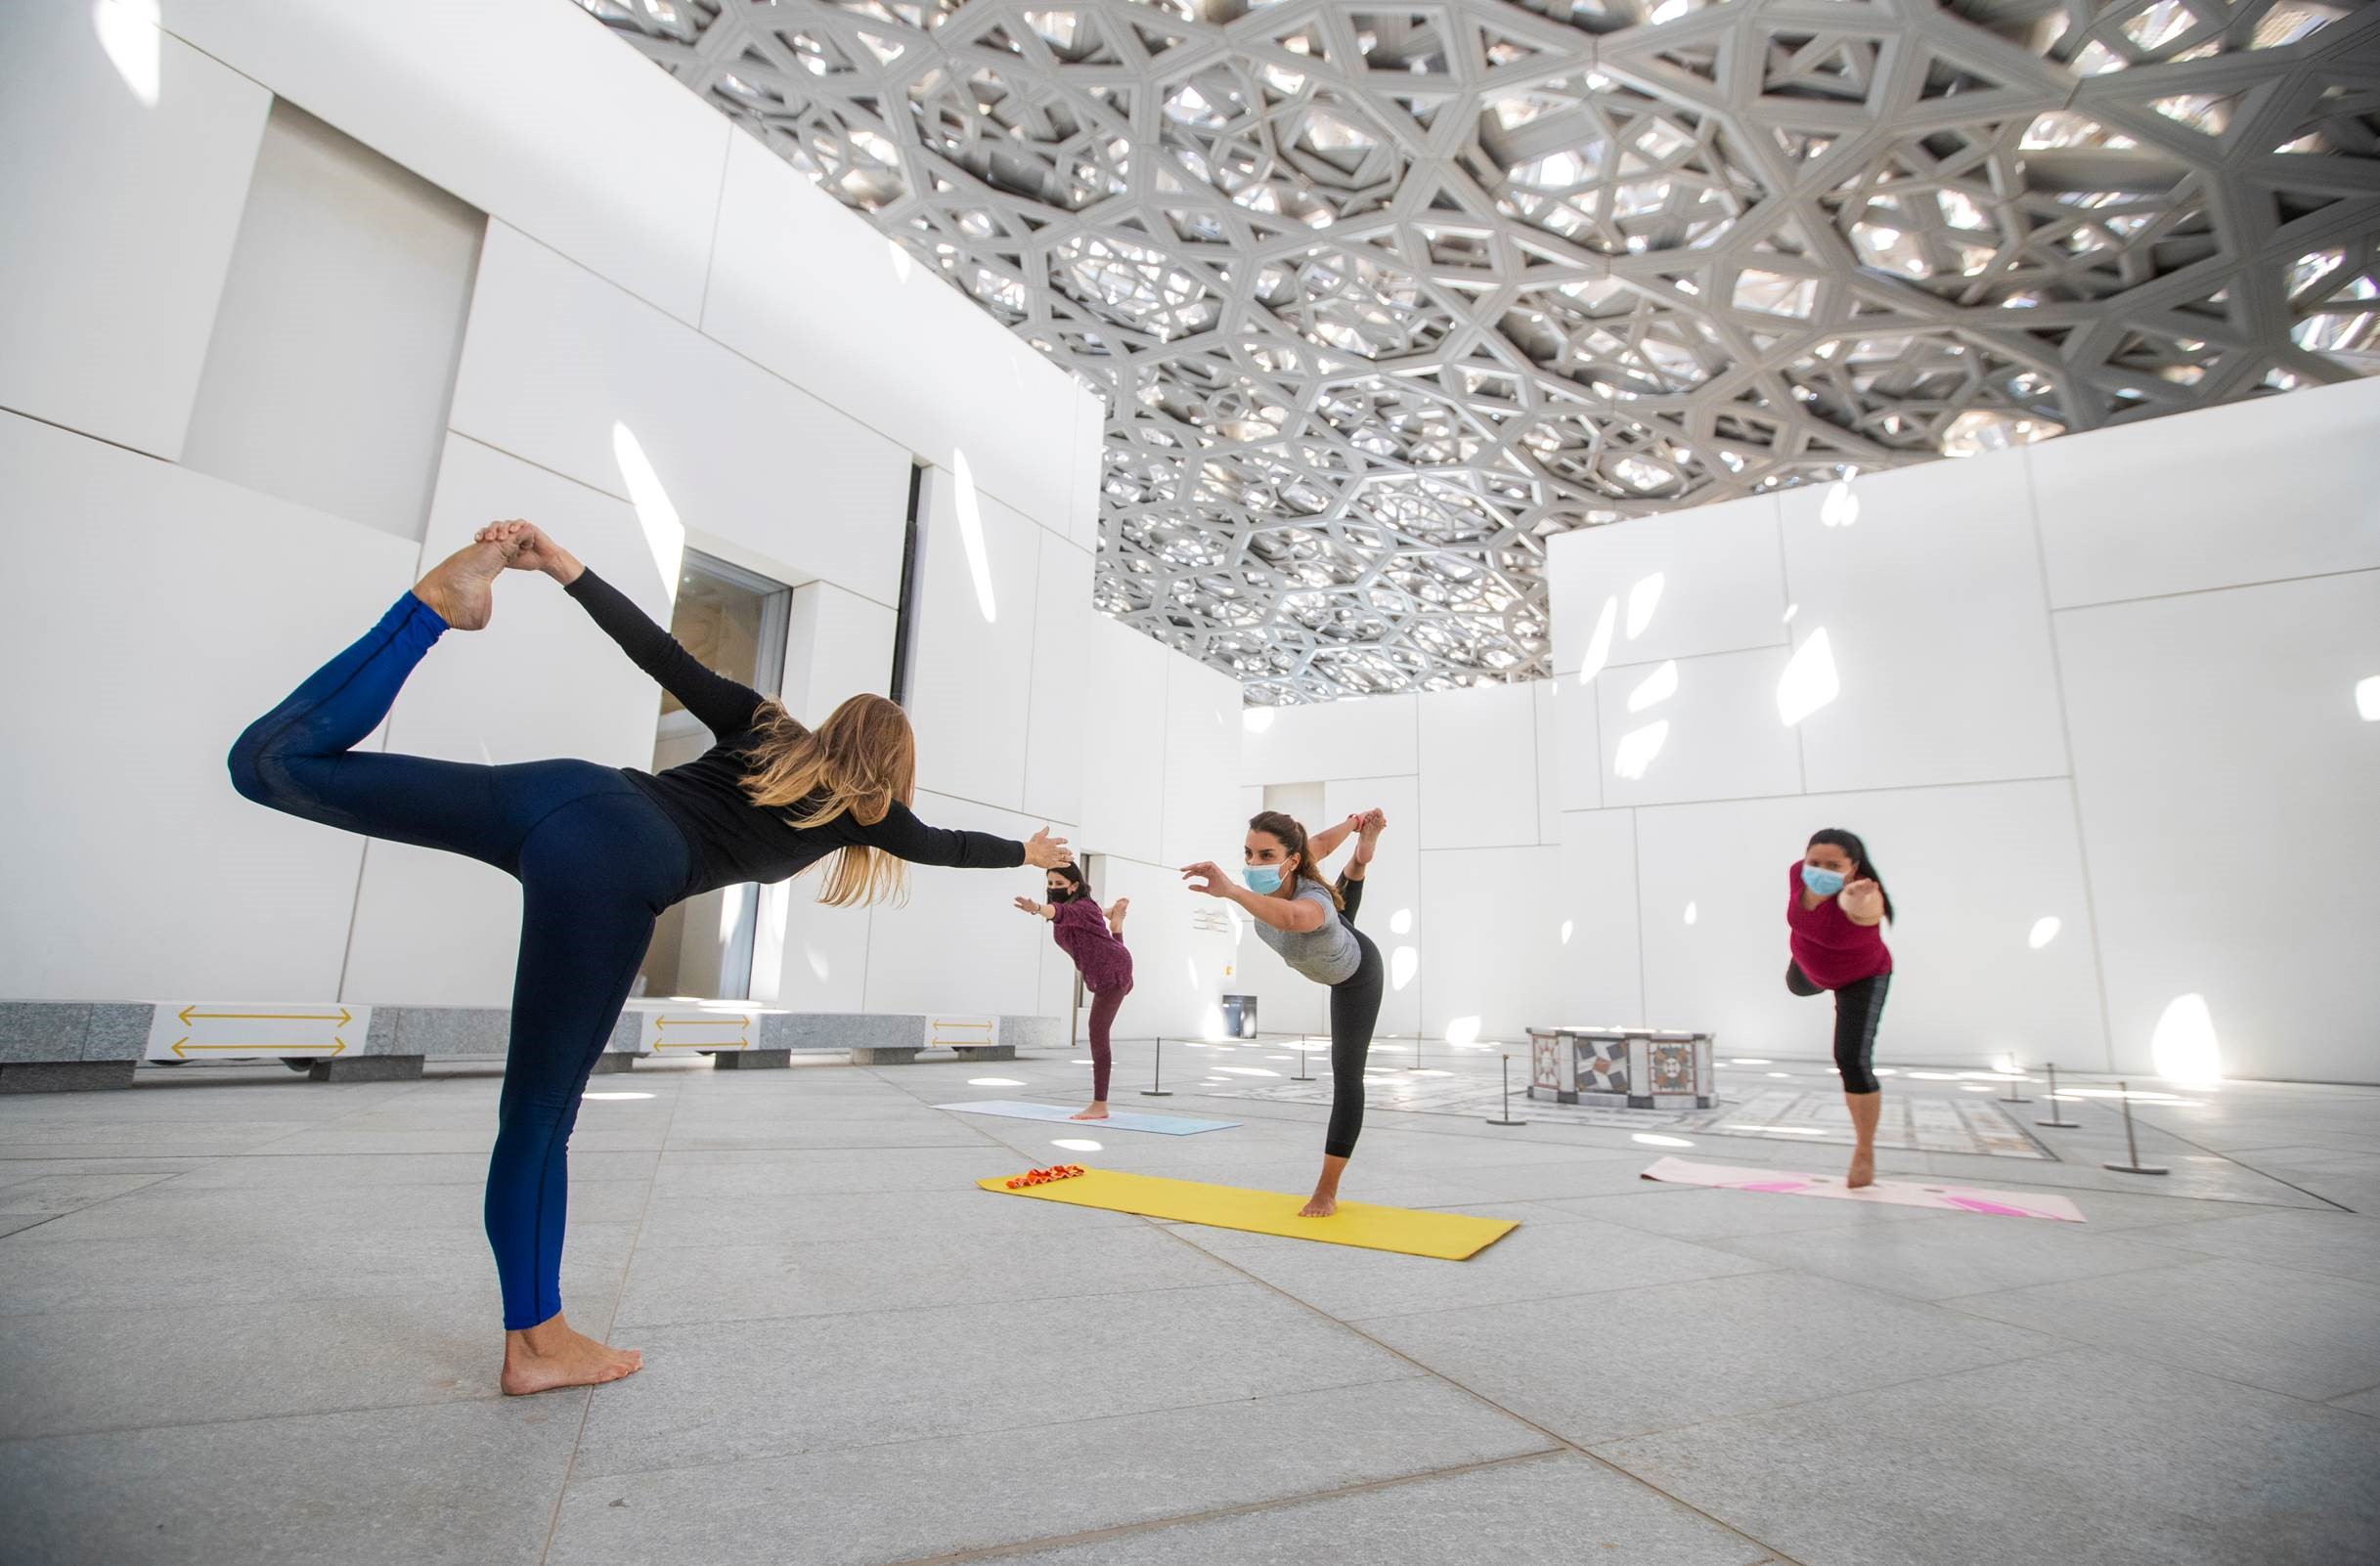 Yoga at Louvre Abu Dhabi